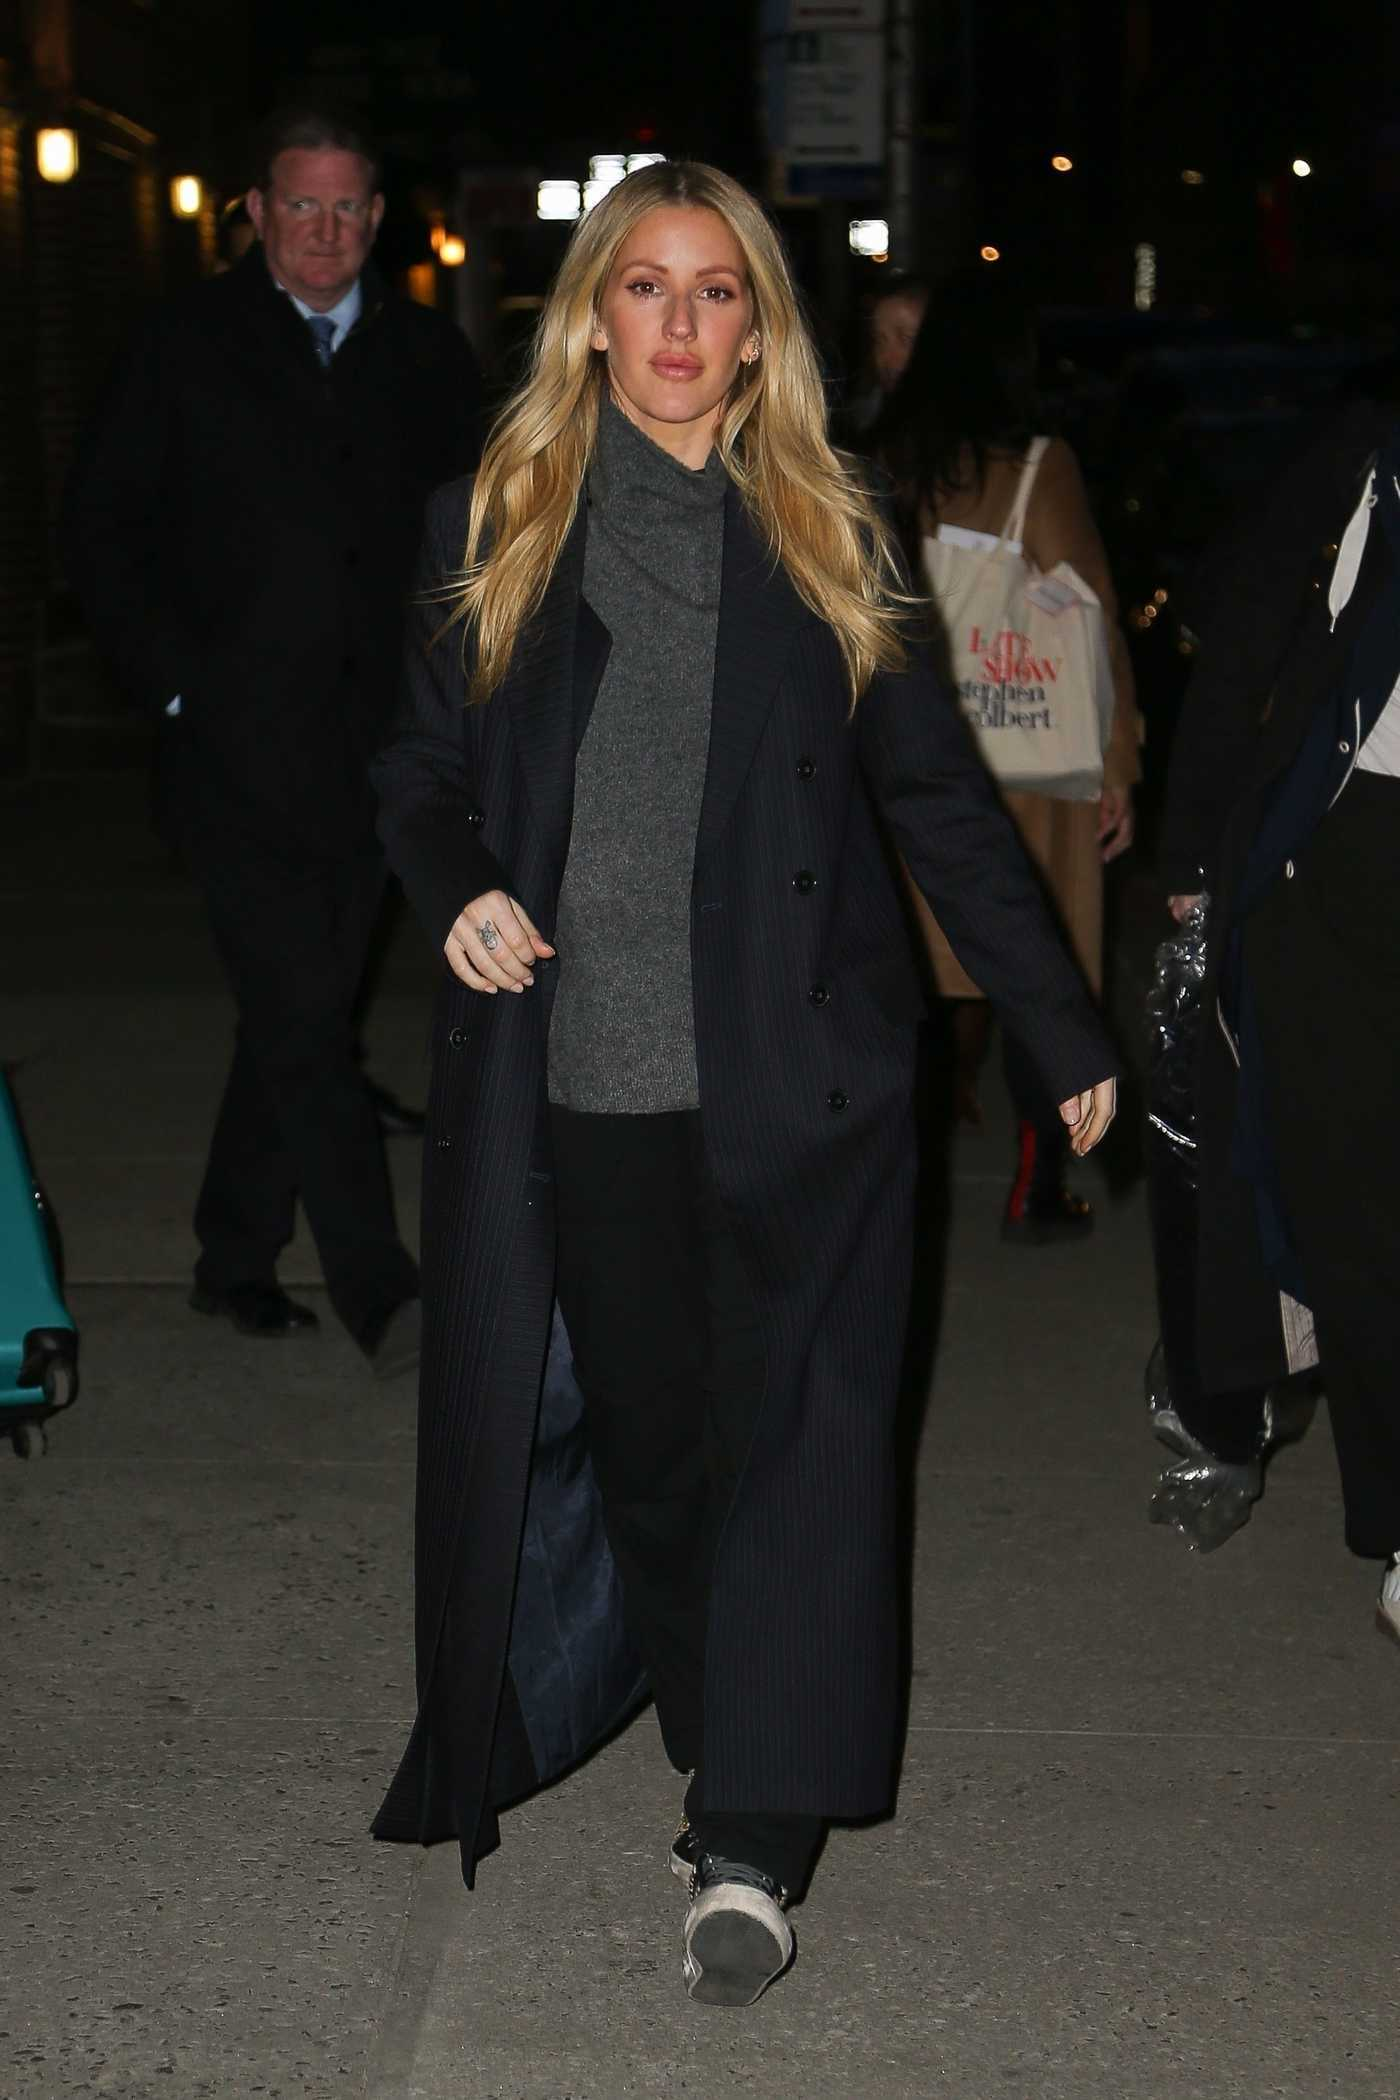 Ellie Goulding in a Black Coat Visits The Late Show with Stephen Colbert in NYC 03/11/2019